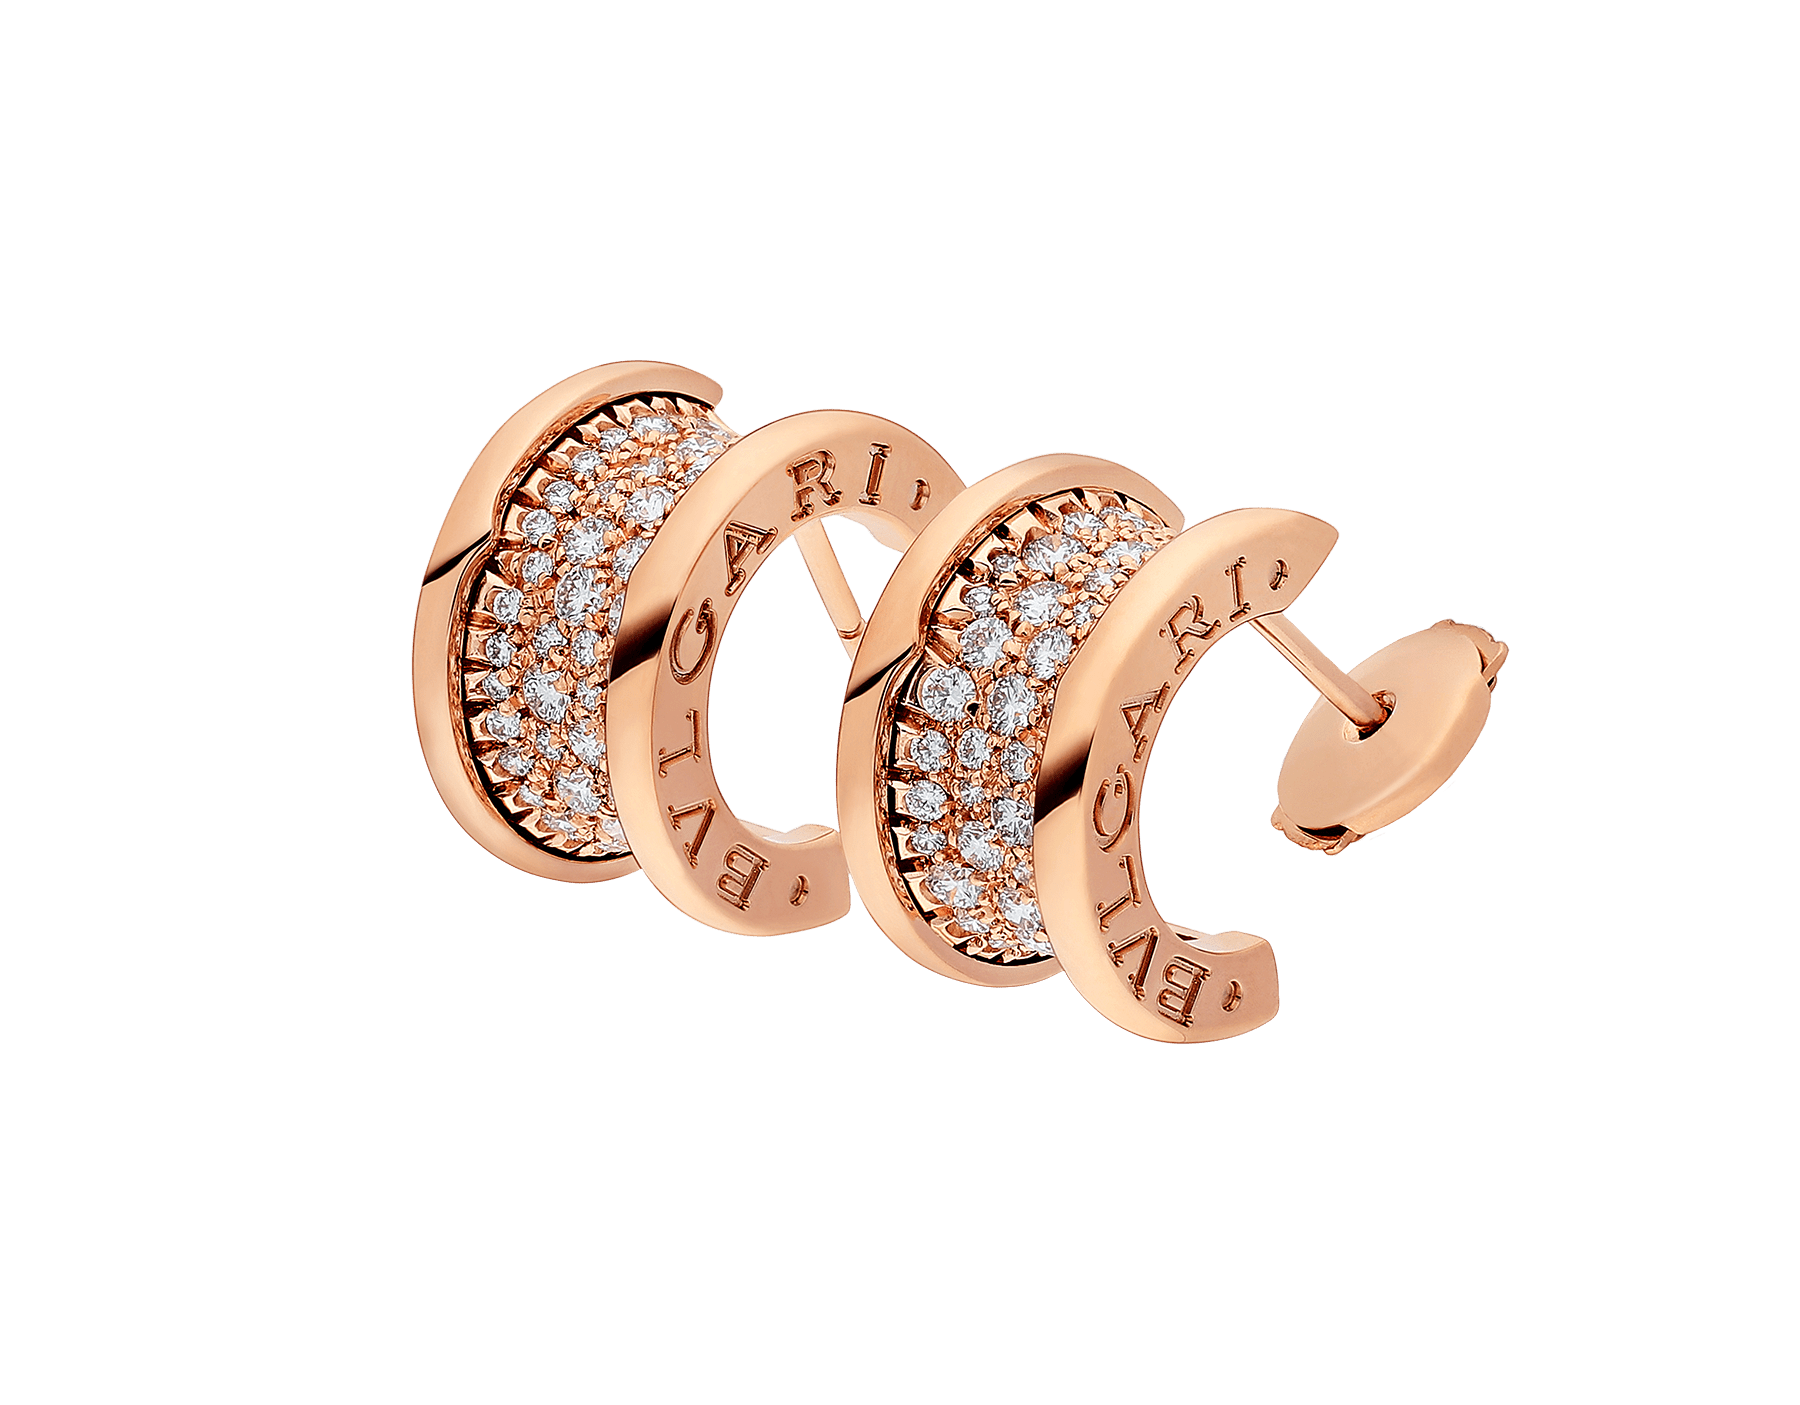 B.zero1 earrings in 18 kt rose gold set with pavé diamonds on the spiral. 347814 image 2